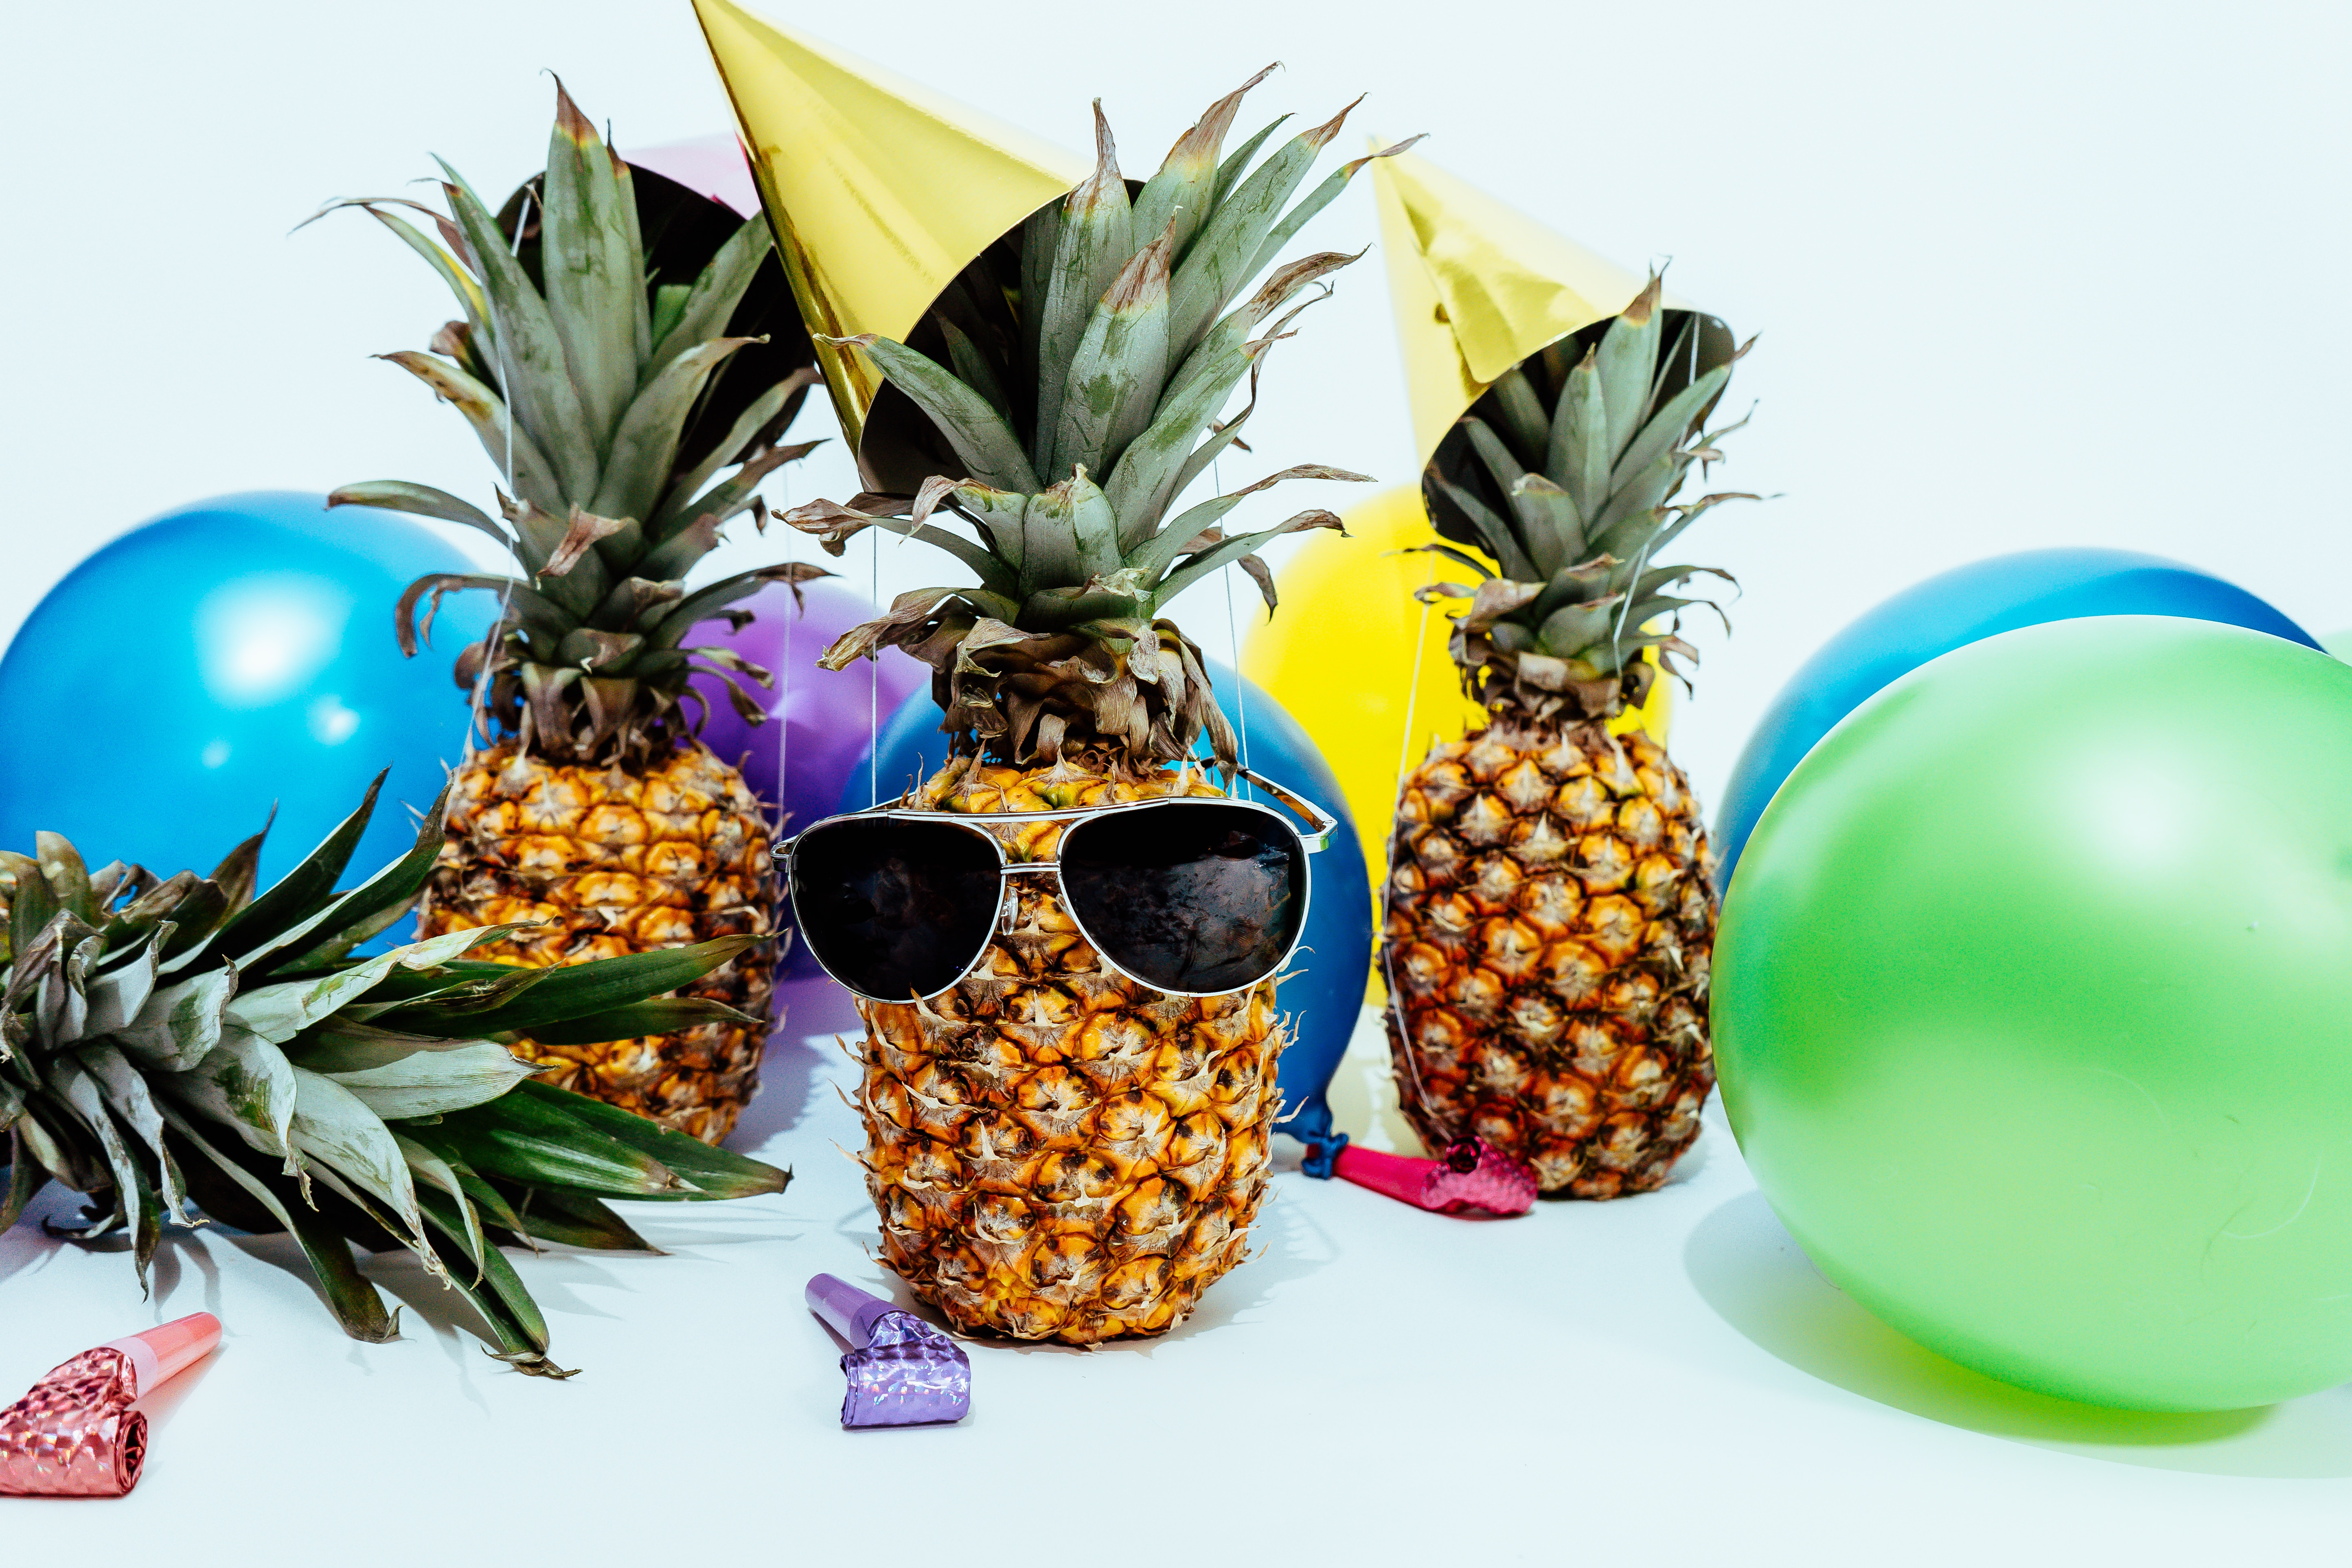 Pineapple with sunglasses, balloons, party hats